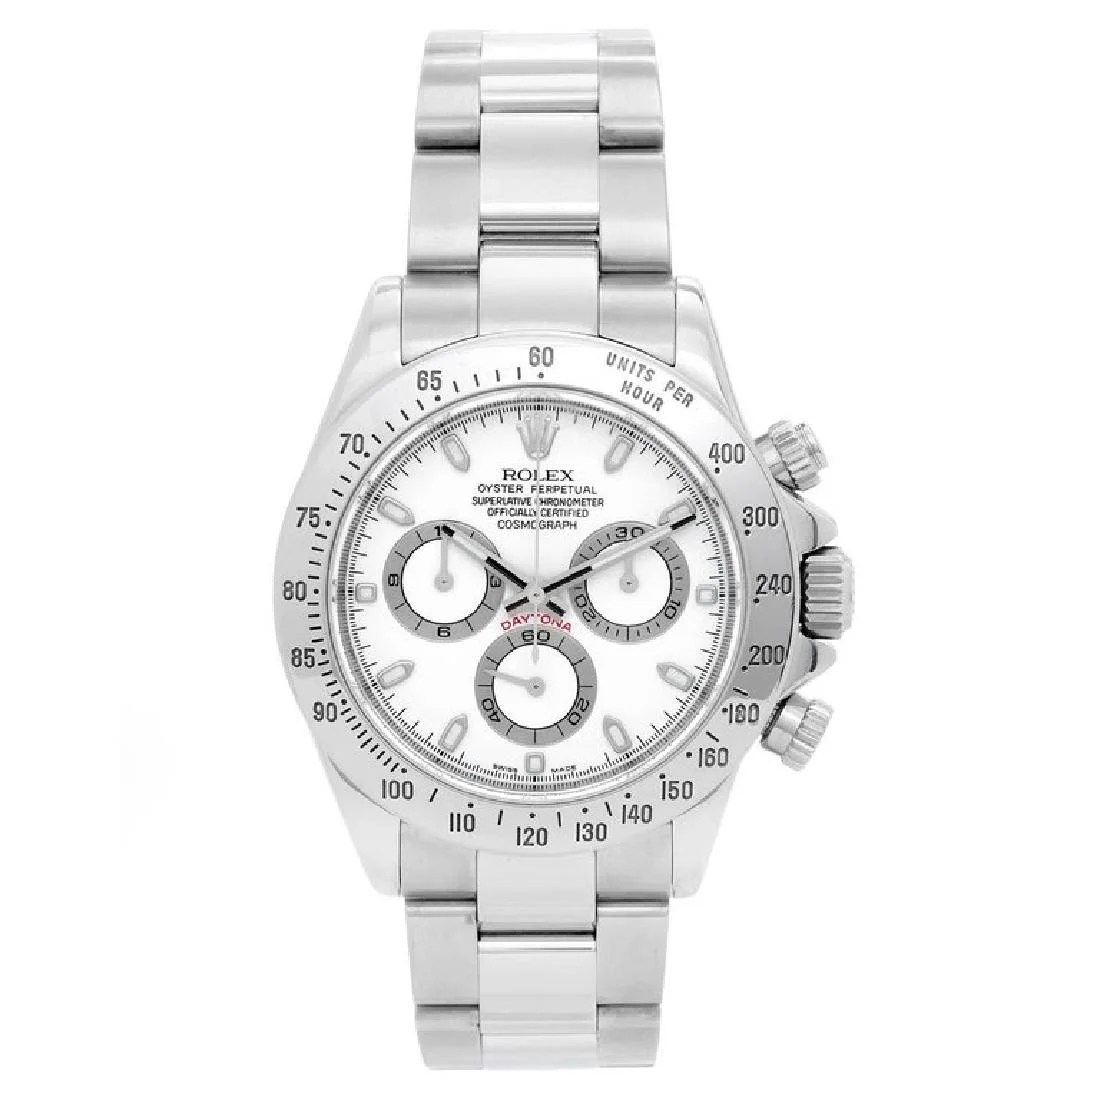 Stainless Rolex Rolex Stainless Steel Daytona Chronograph Automatic On Liveauctioneers